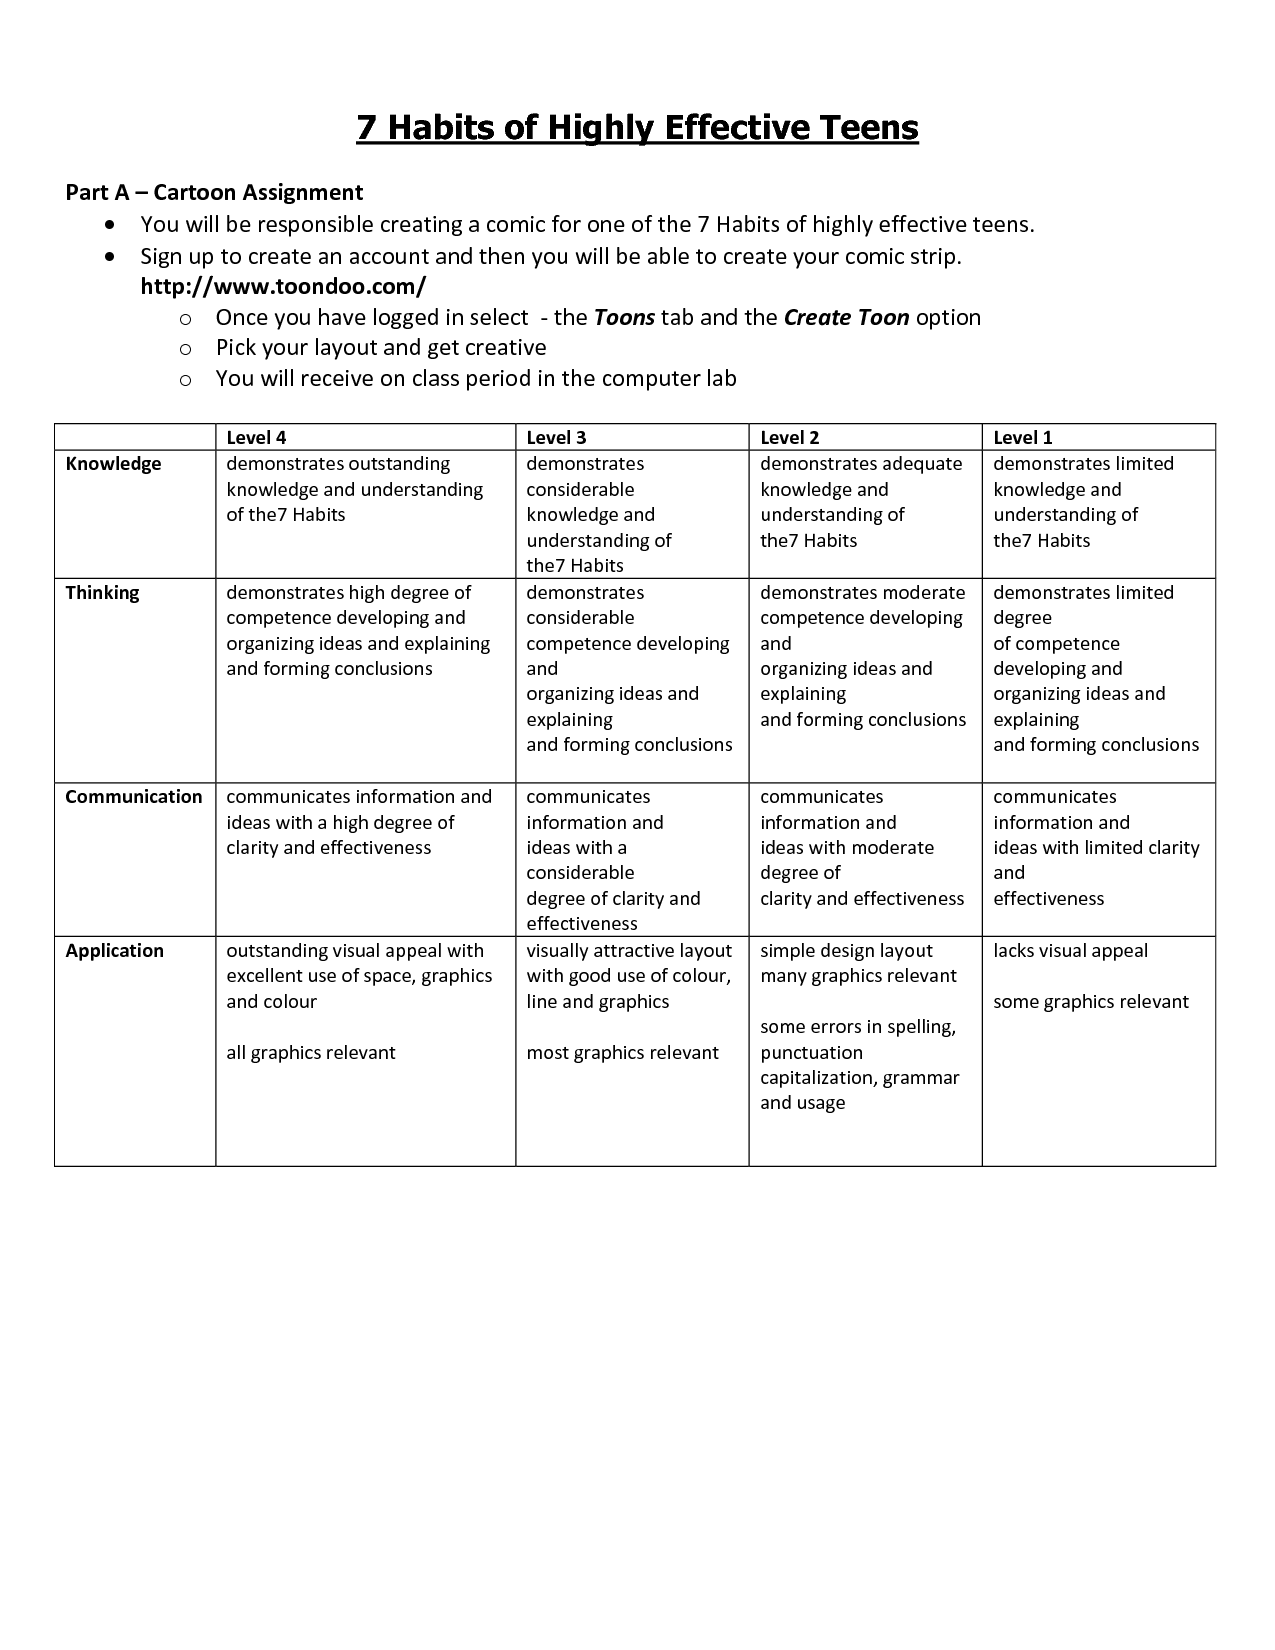 7 Best Images Of 7 Habits Of Highly Effective Teens Worksheets